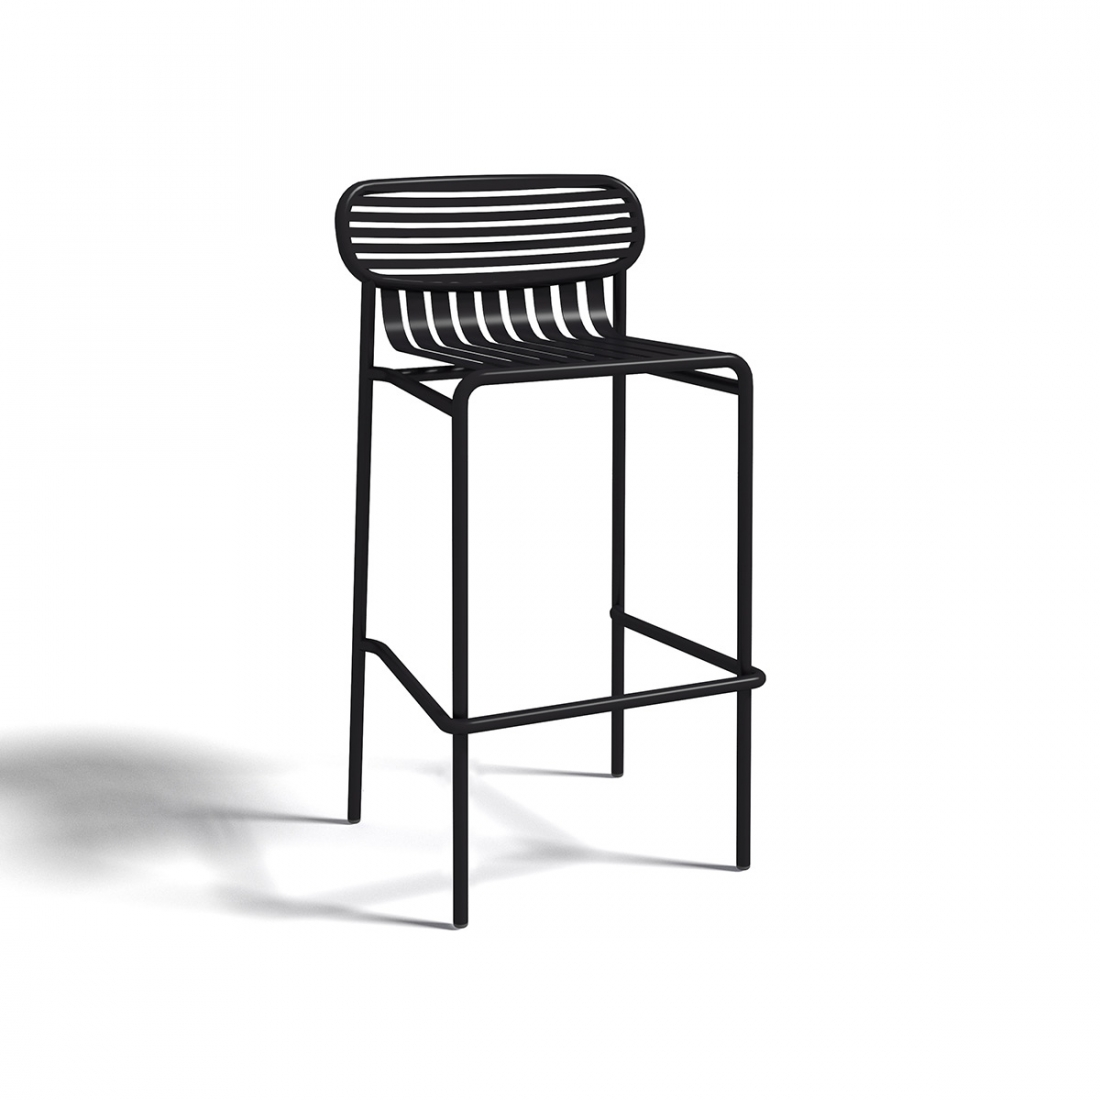 tabouret de bar d ext rieur design week end par oxyo. Black Bedroom Furniture Sets. Home Design Ideas